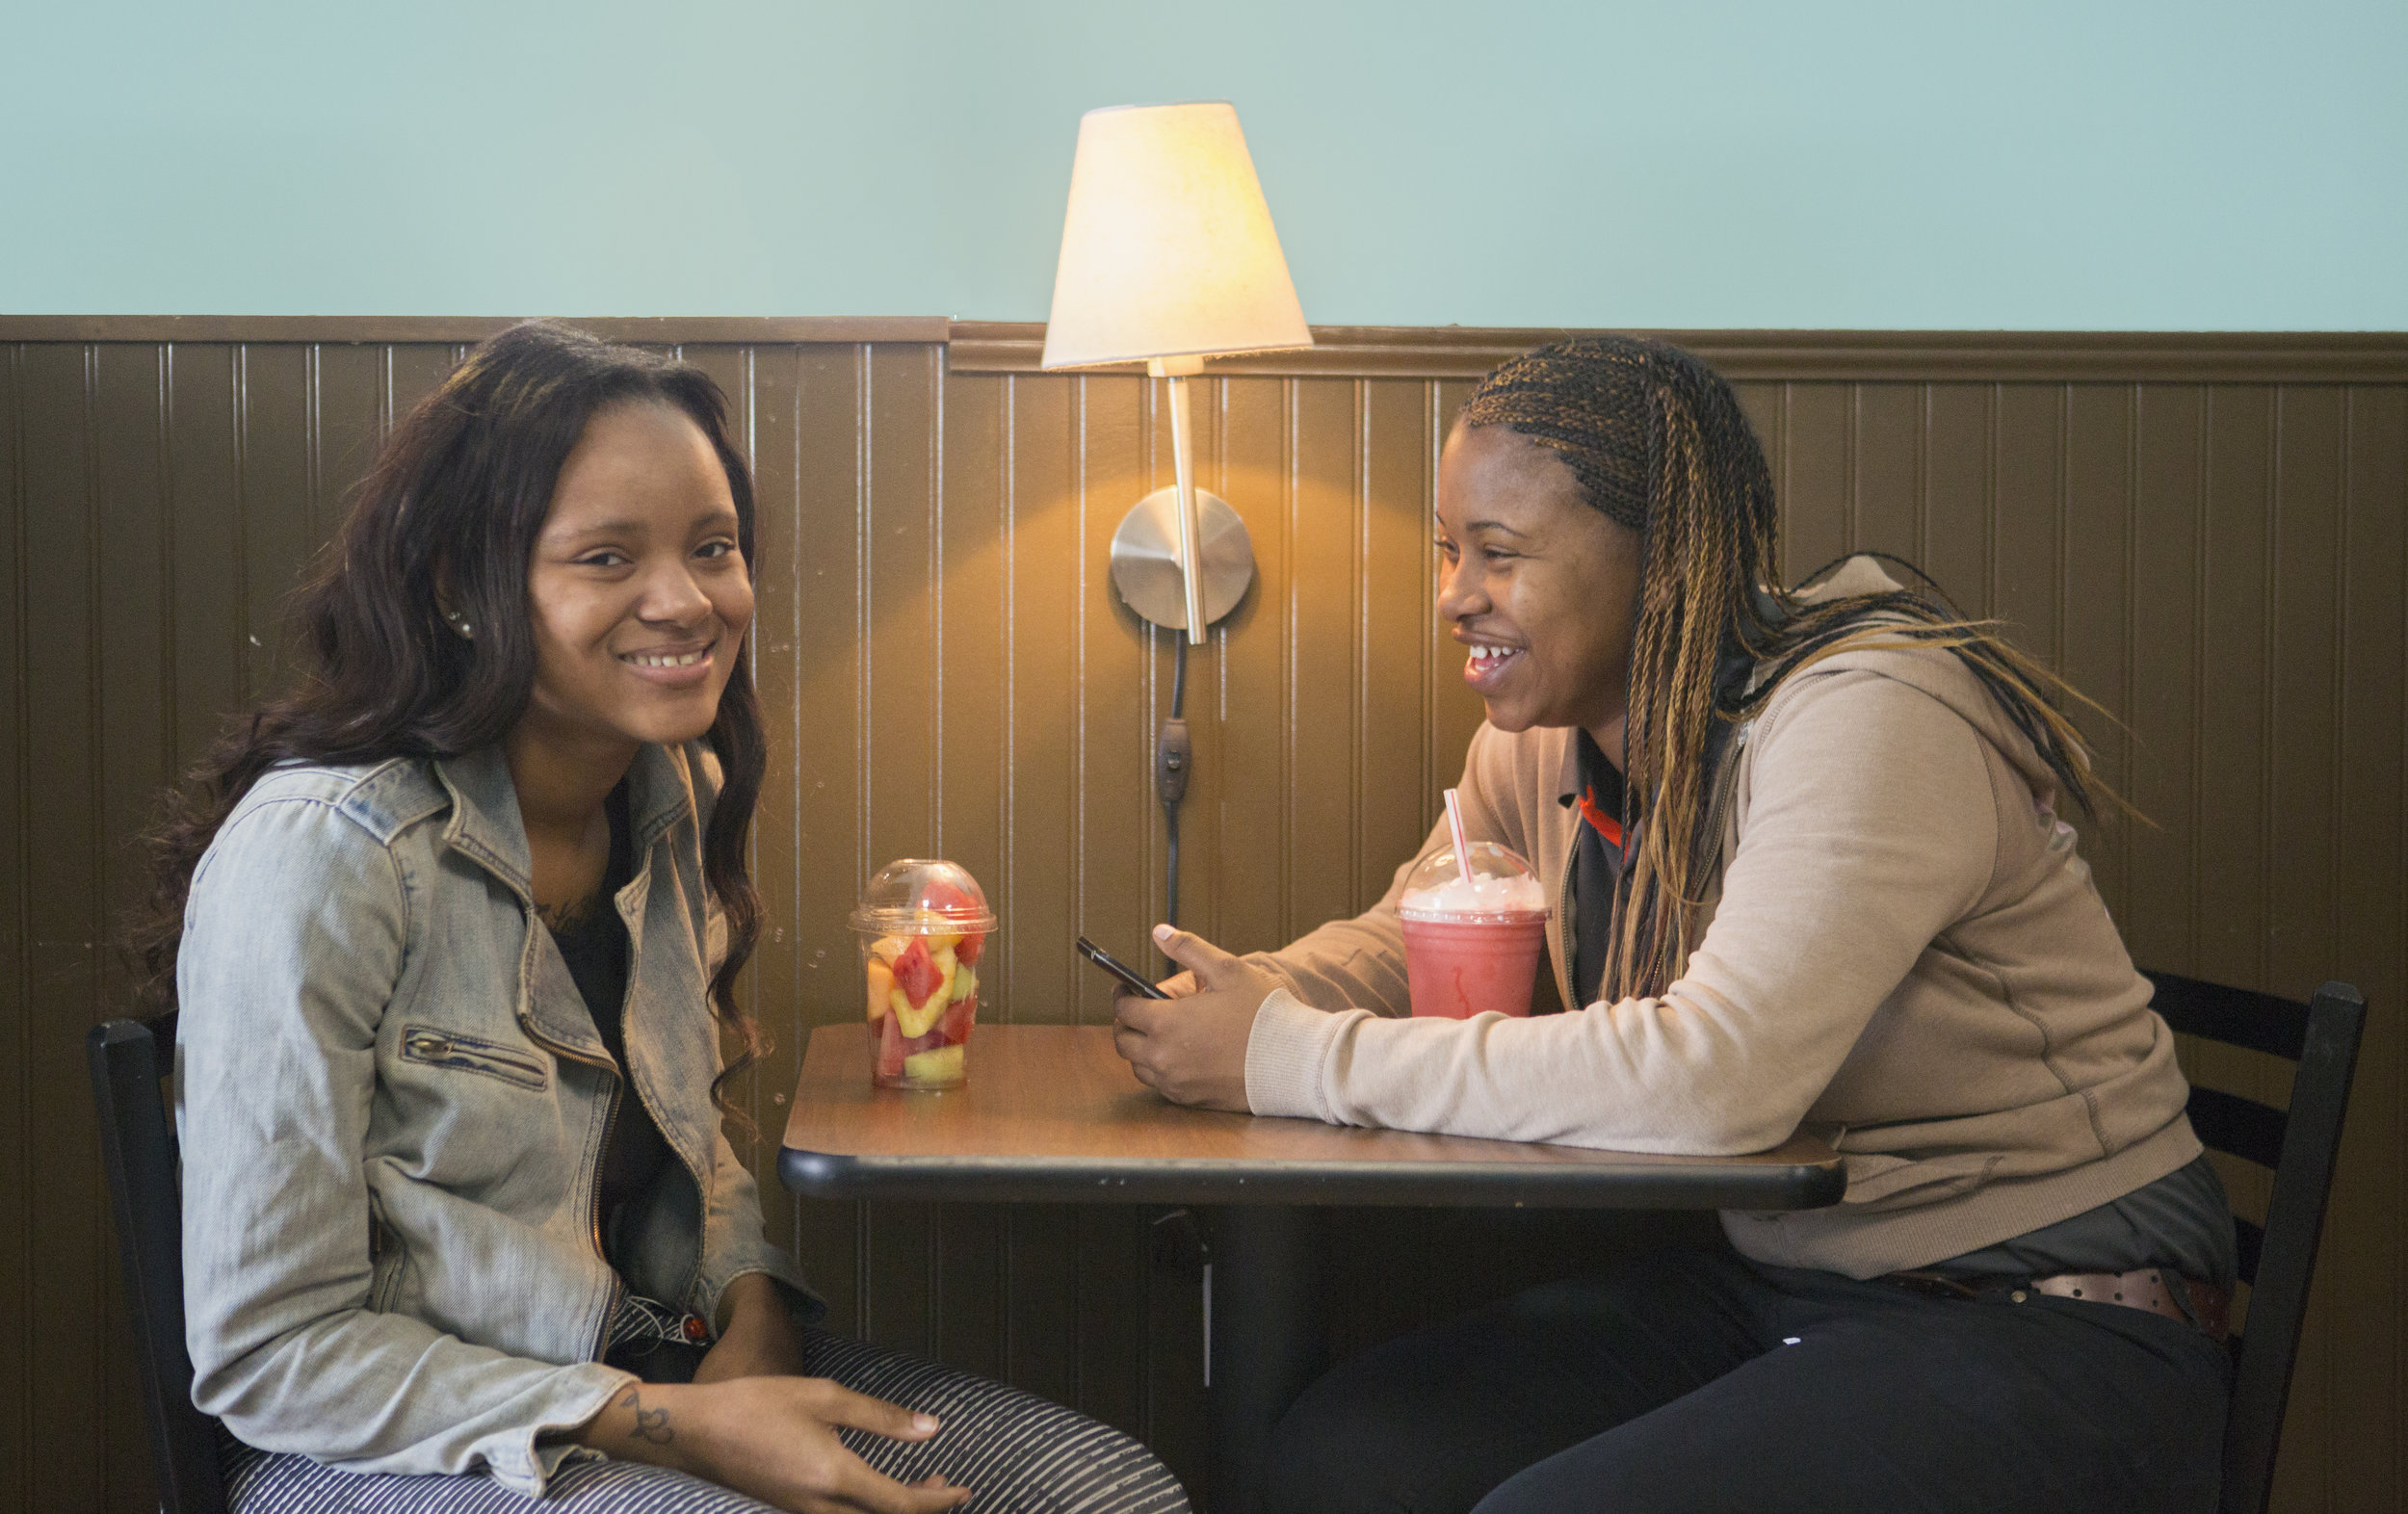 Two young ladies enjoy conversation over food and drink at Community Grounds.